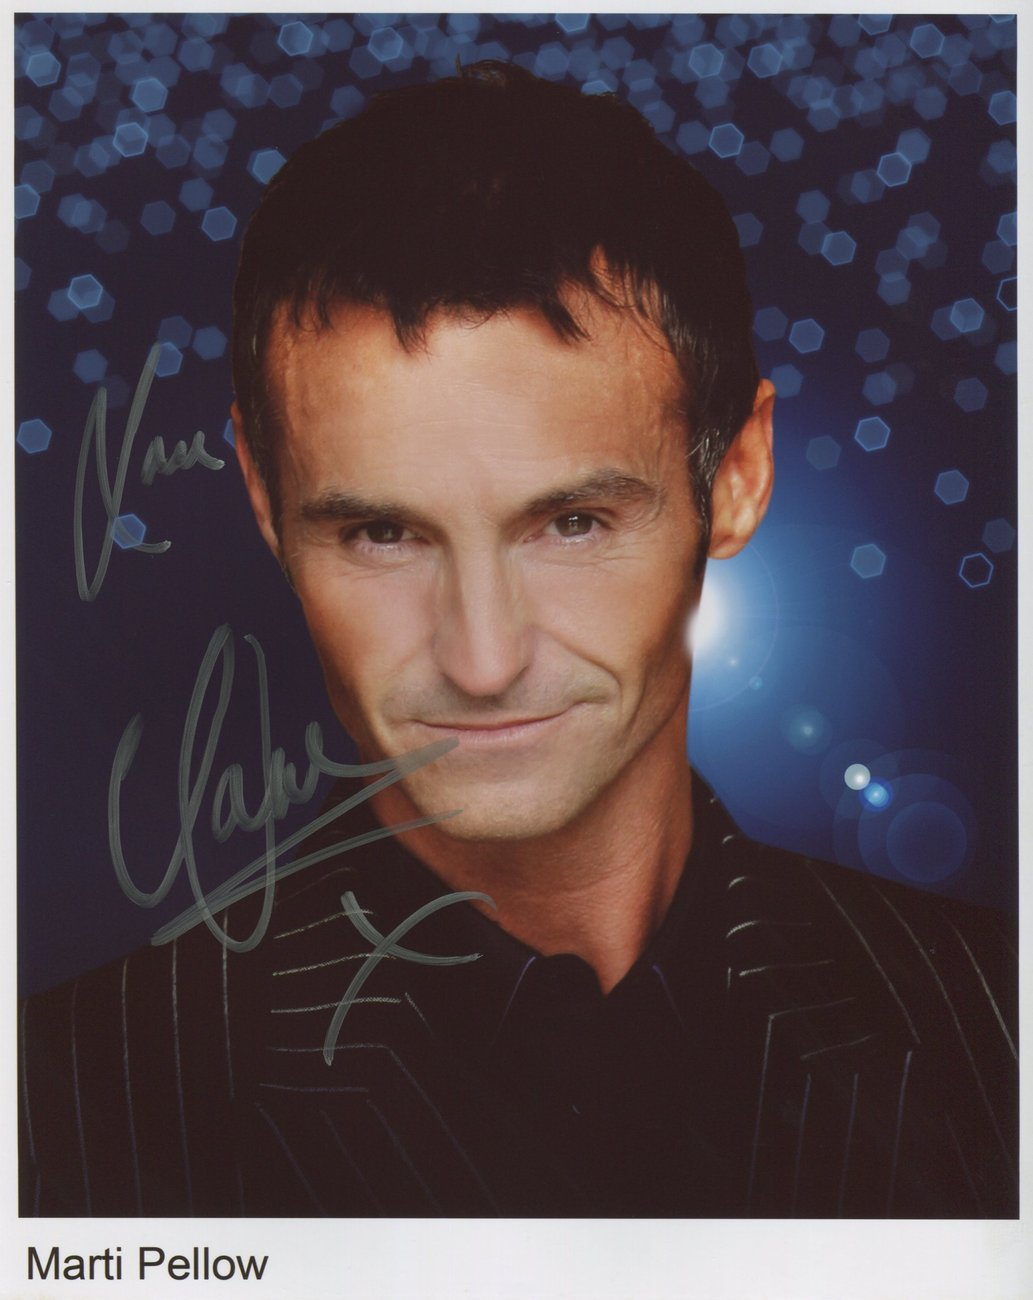 Marti Pellow SIGNED 8 x 10 Photo + COA 100% Genuine